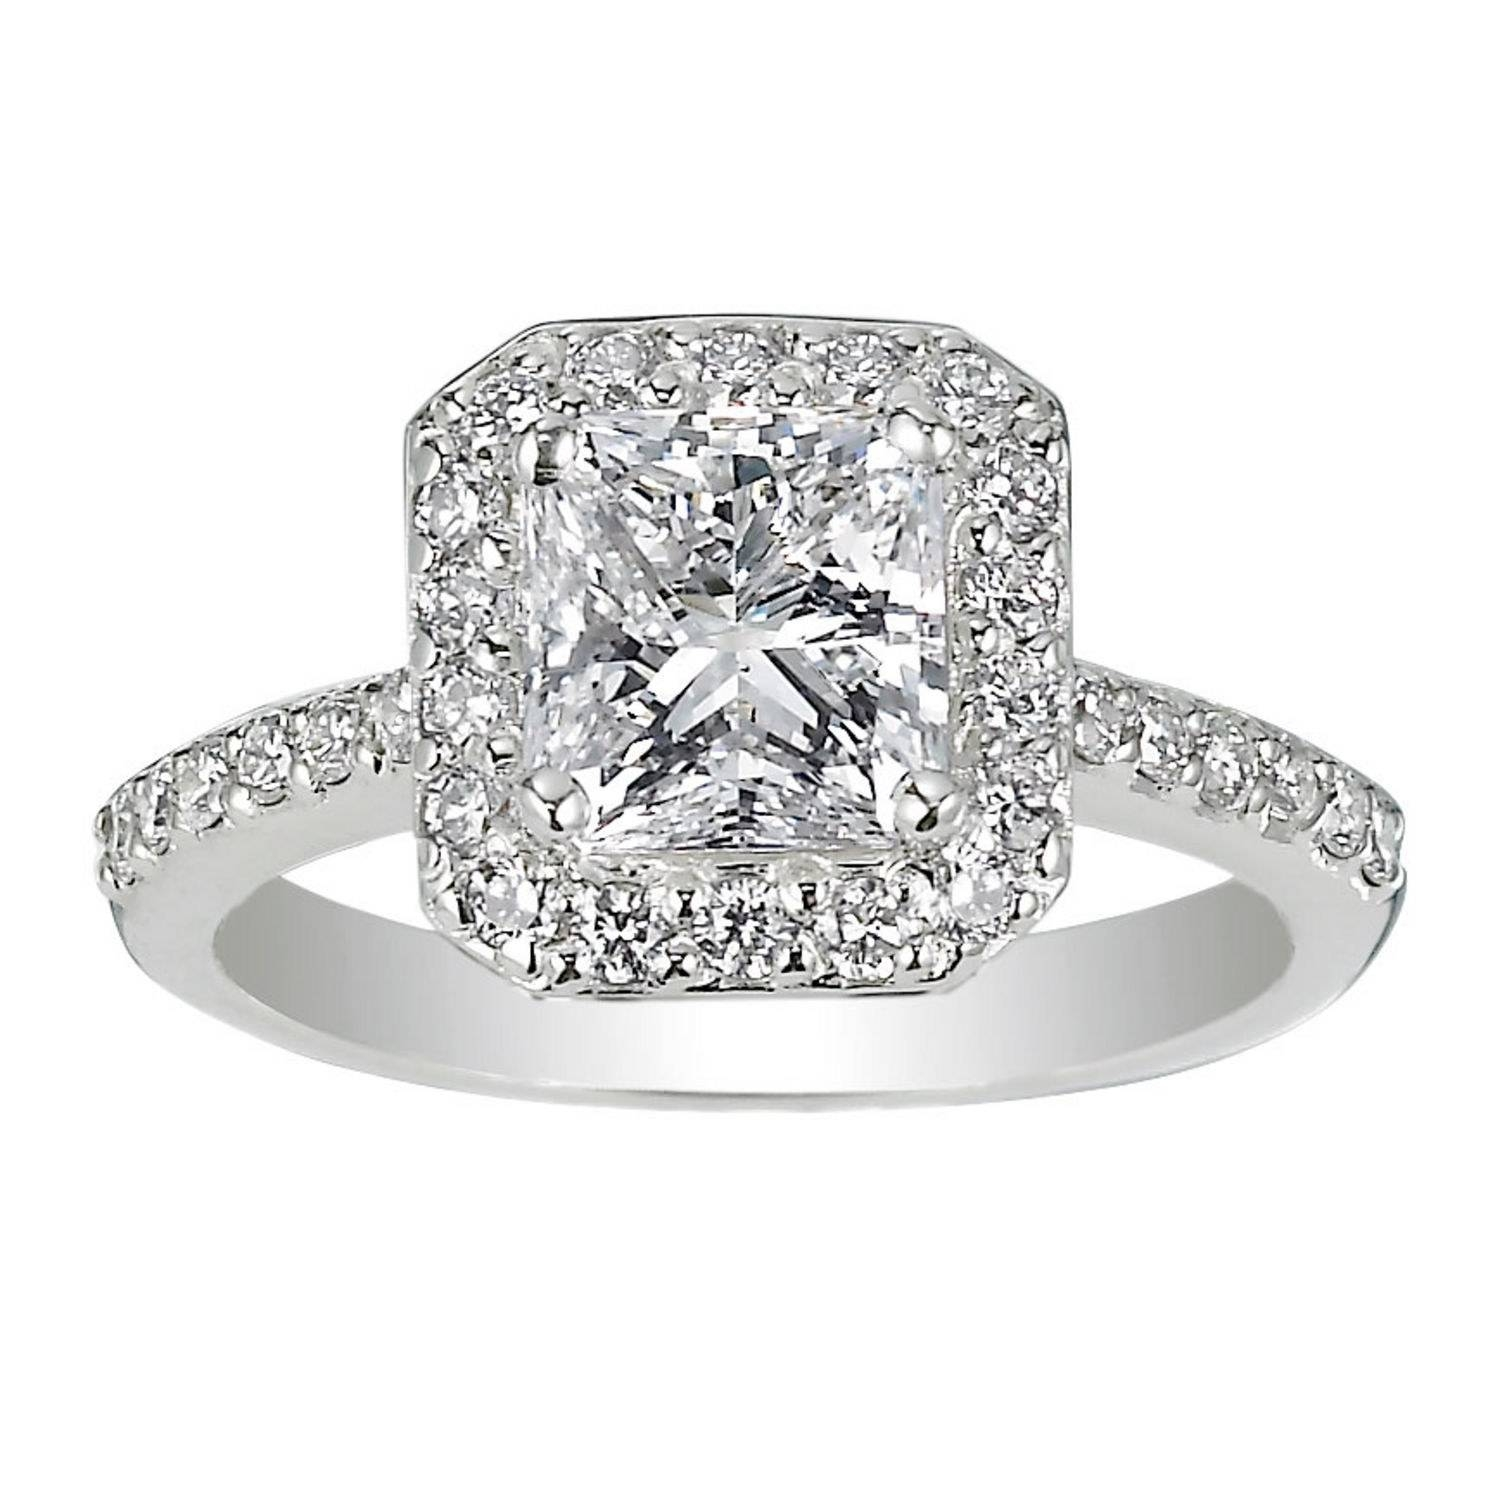 62 Diamond Engagement Rings Under $5,000 | Glamour Inside Diamond Wedding Rings For Women (View 3 of 15)